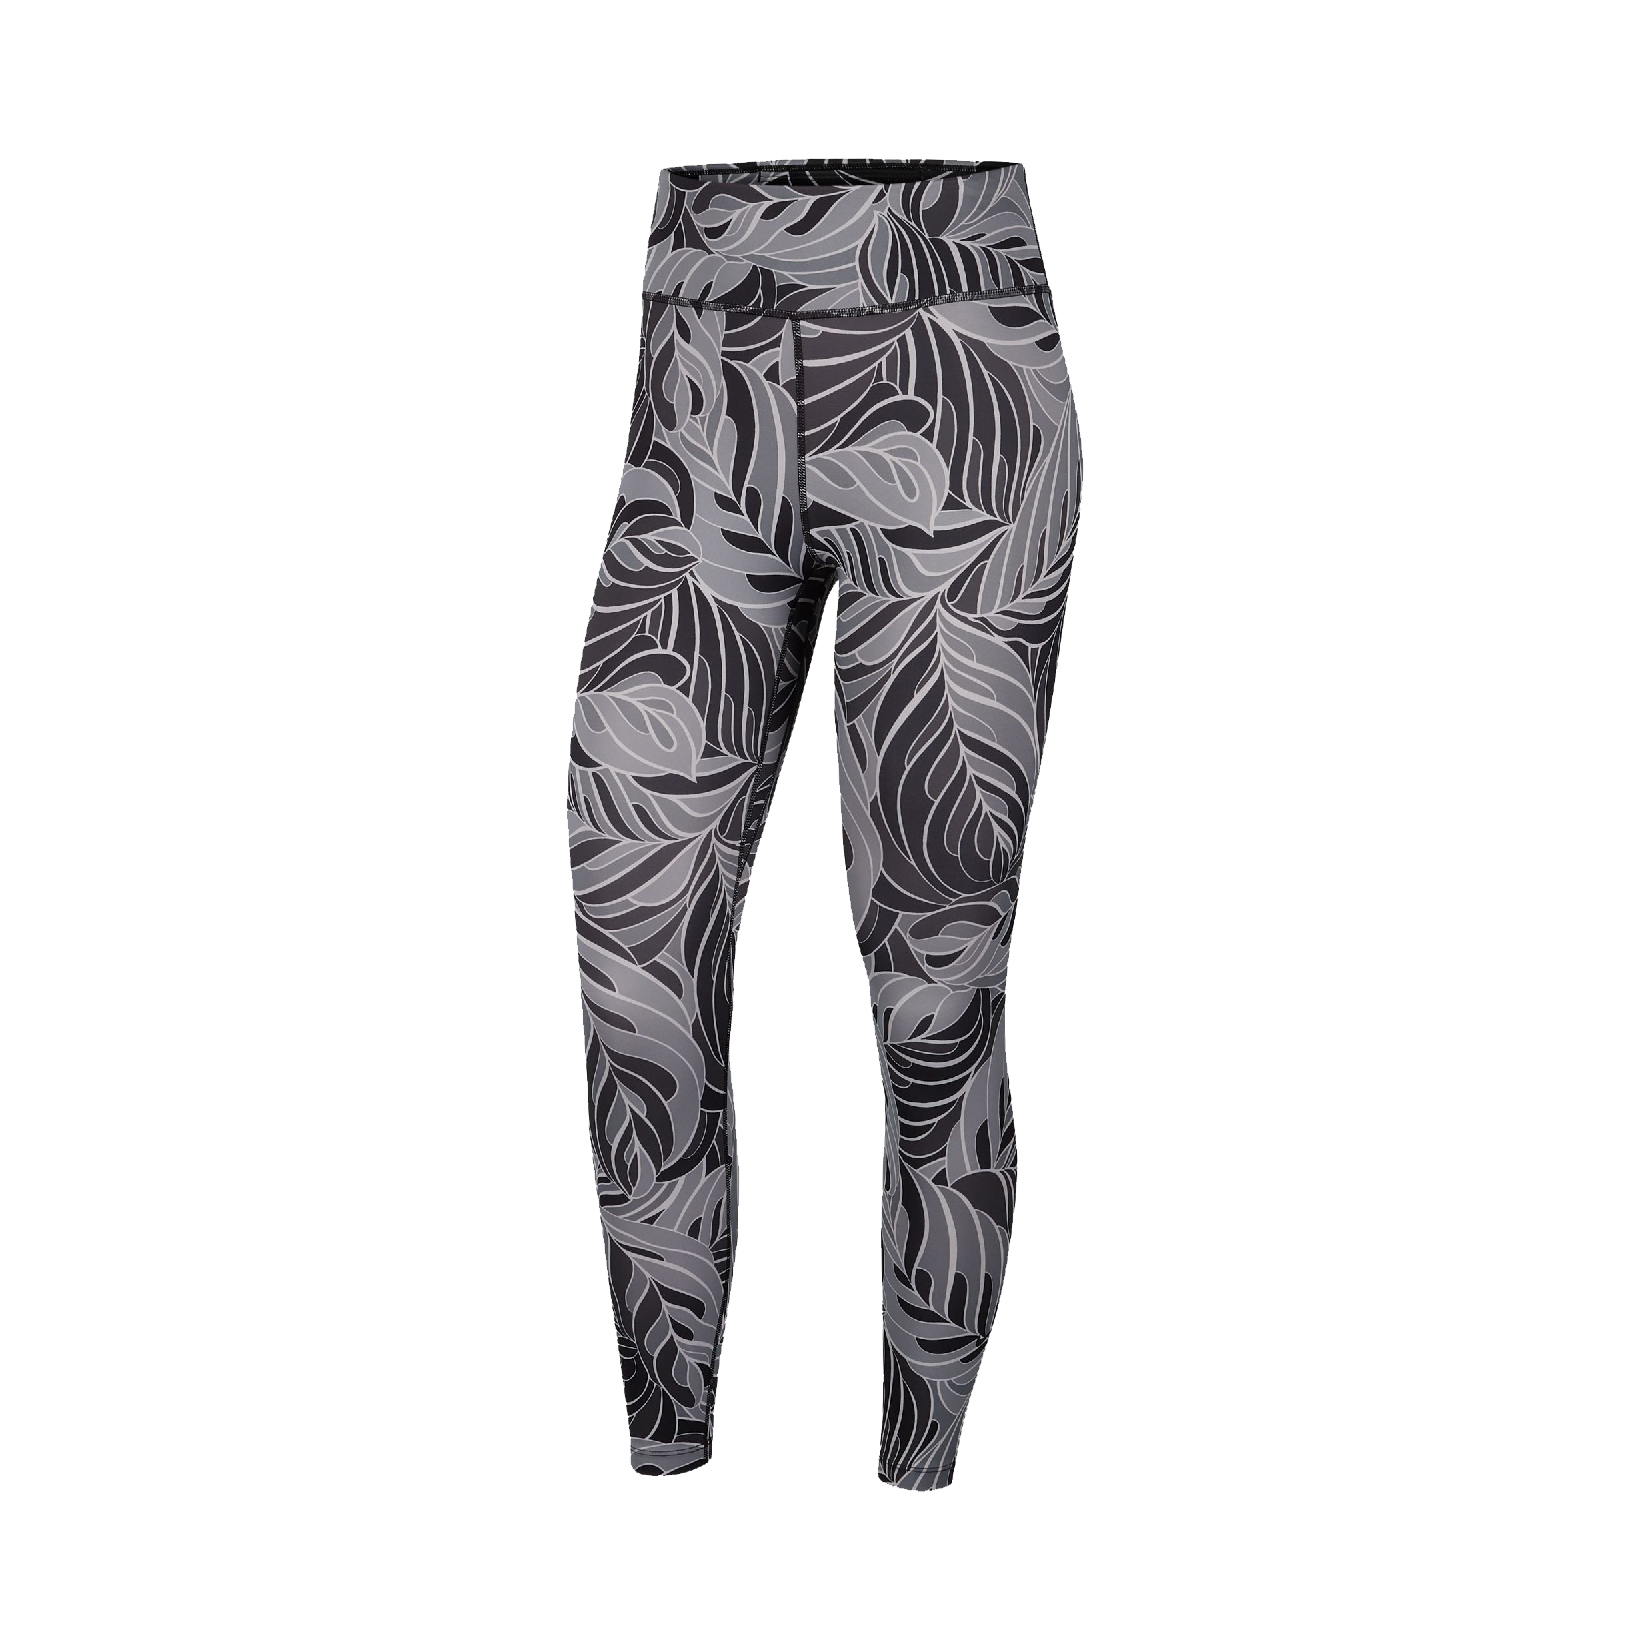 Nike One Tight Printed Mid-Rise 7/8 Leggings Grey